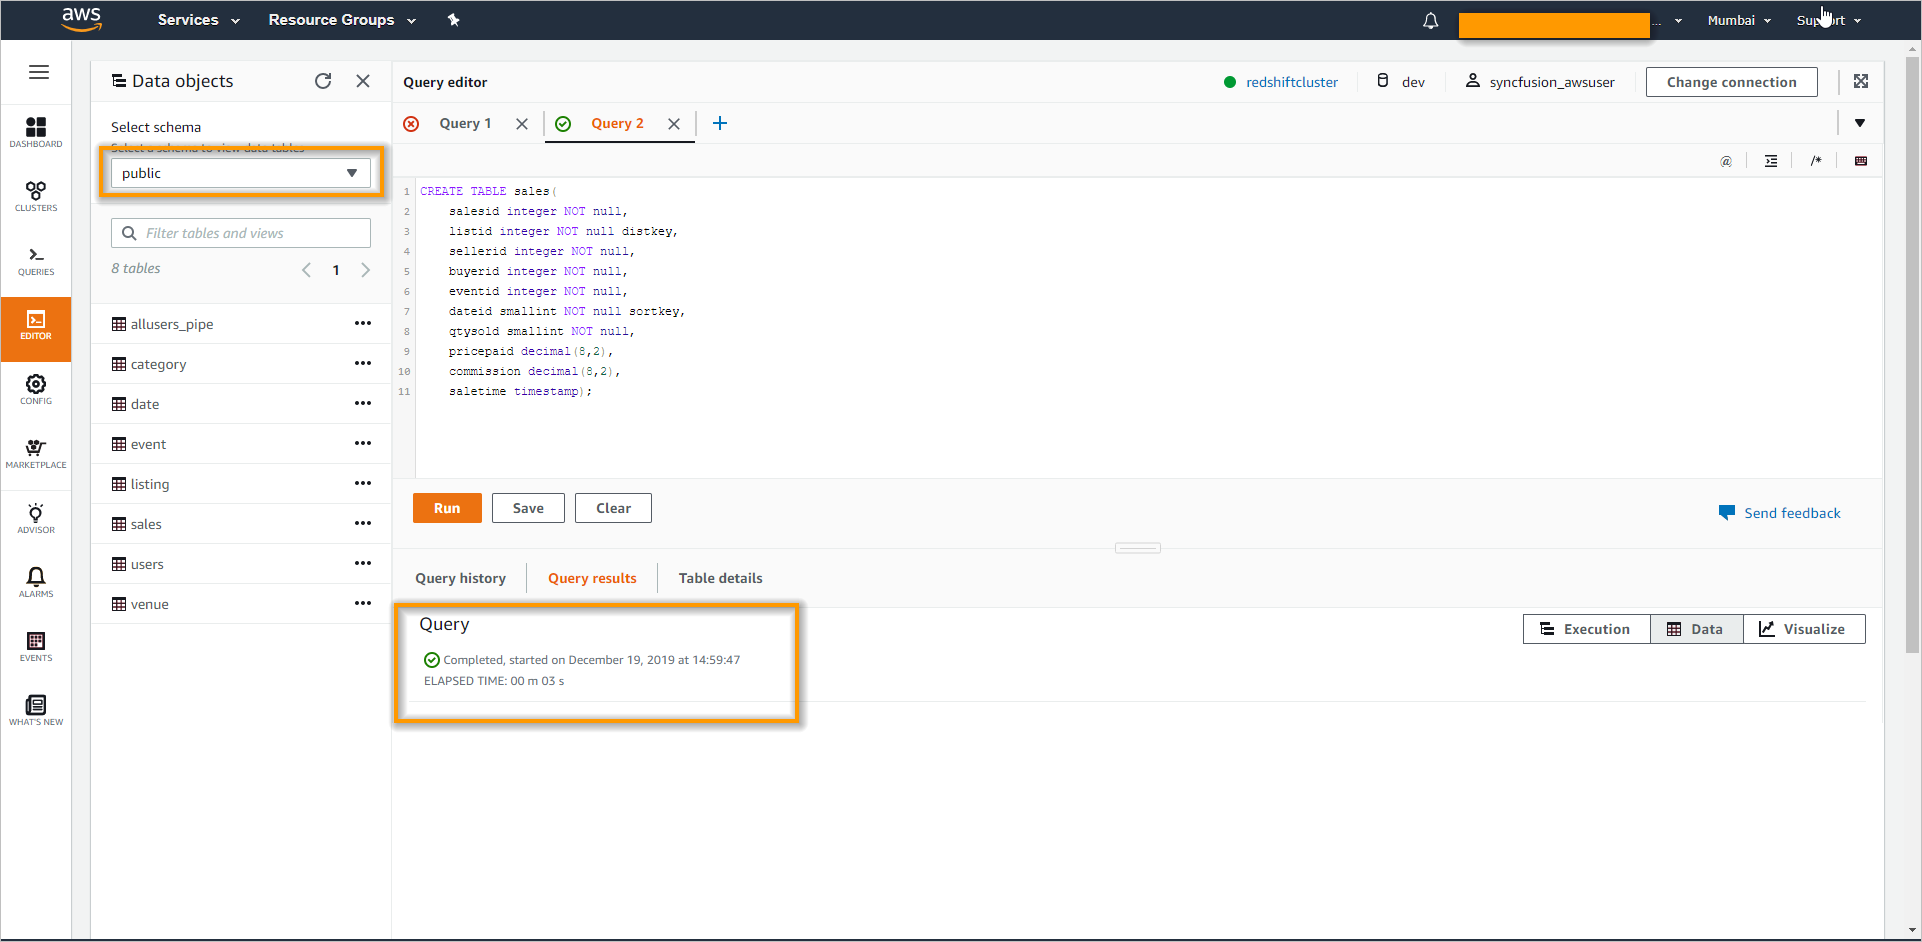 Query editor in Amazon Redshift